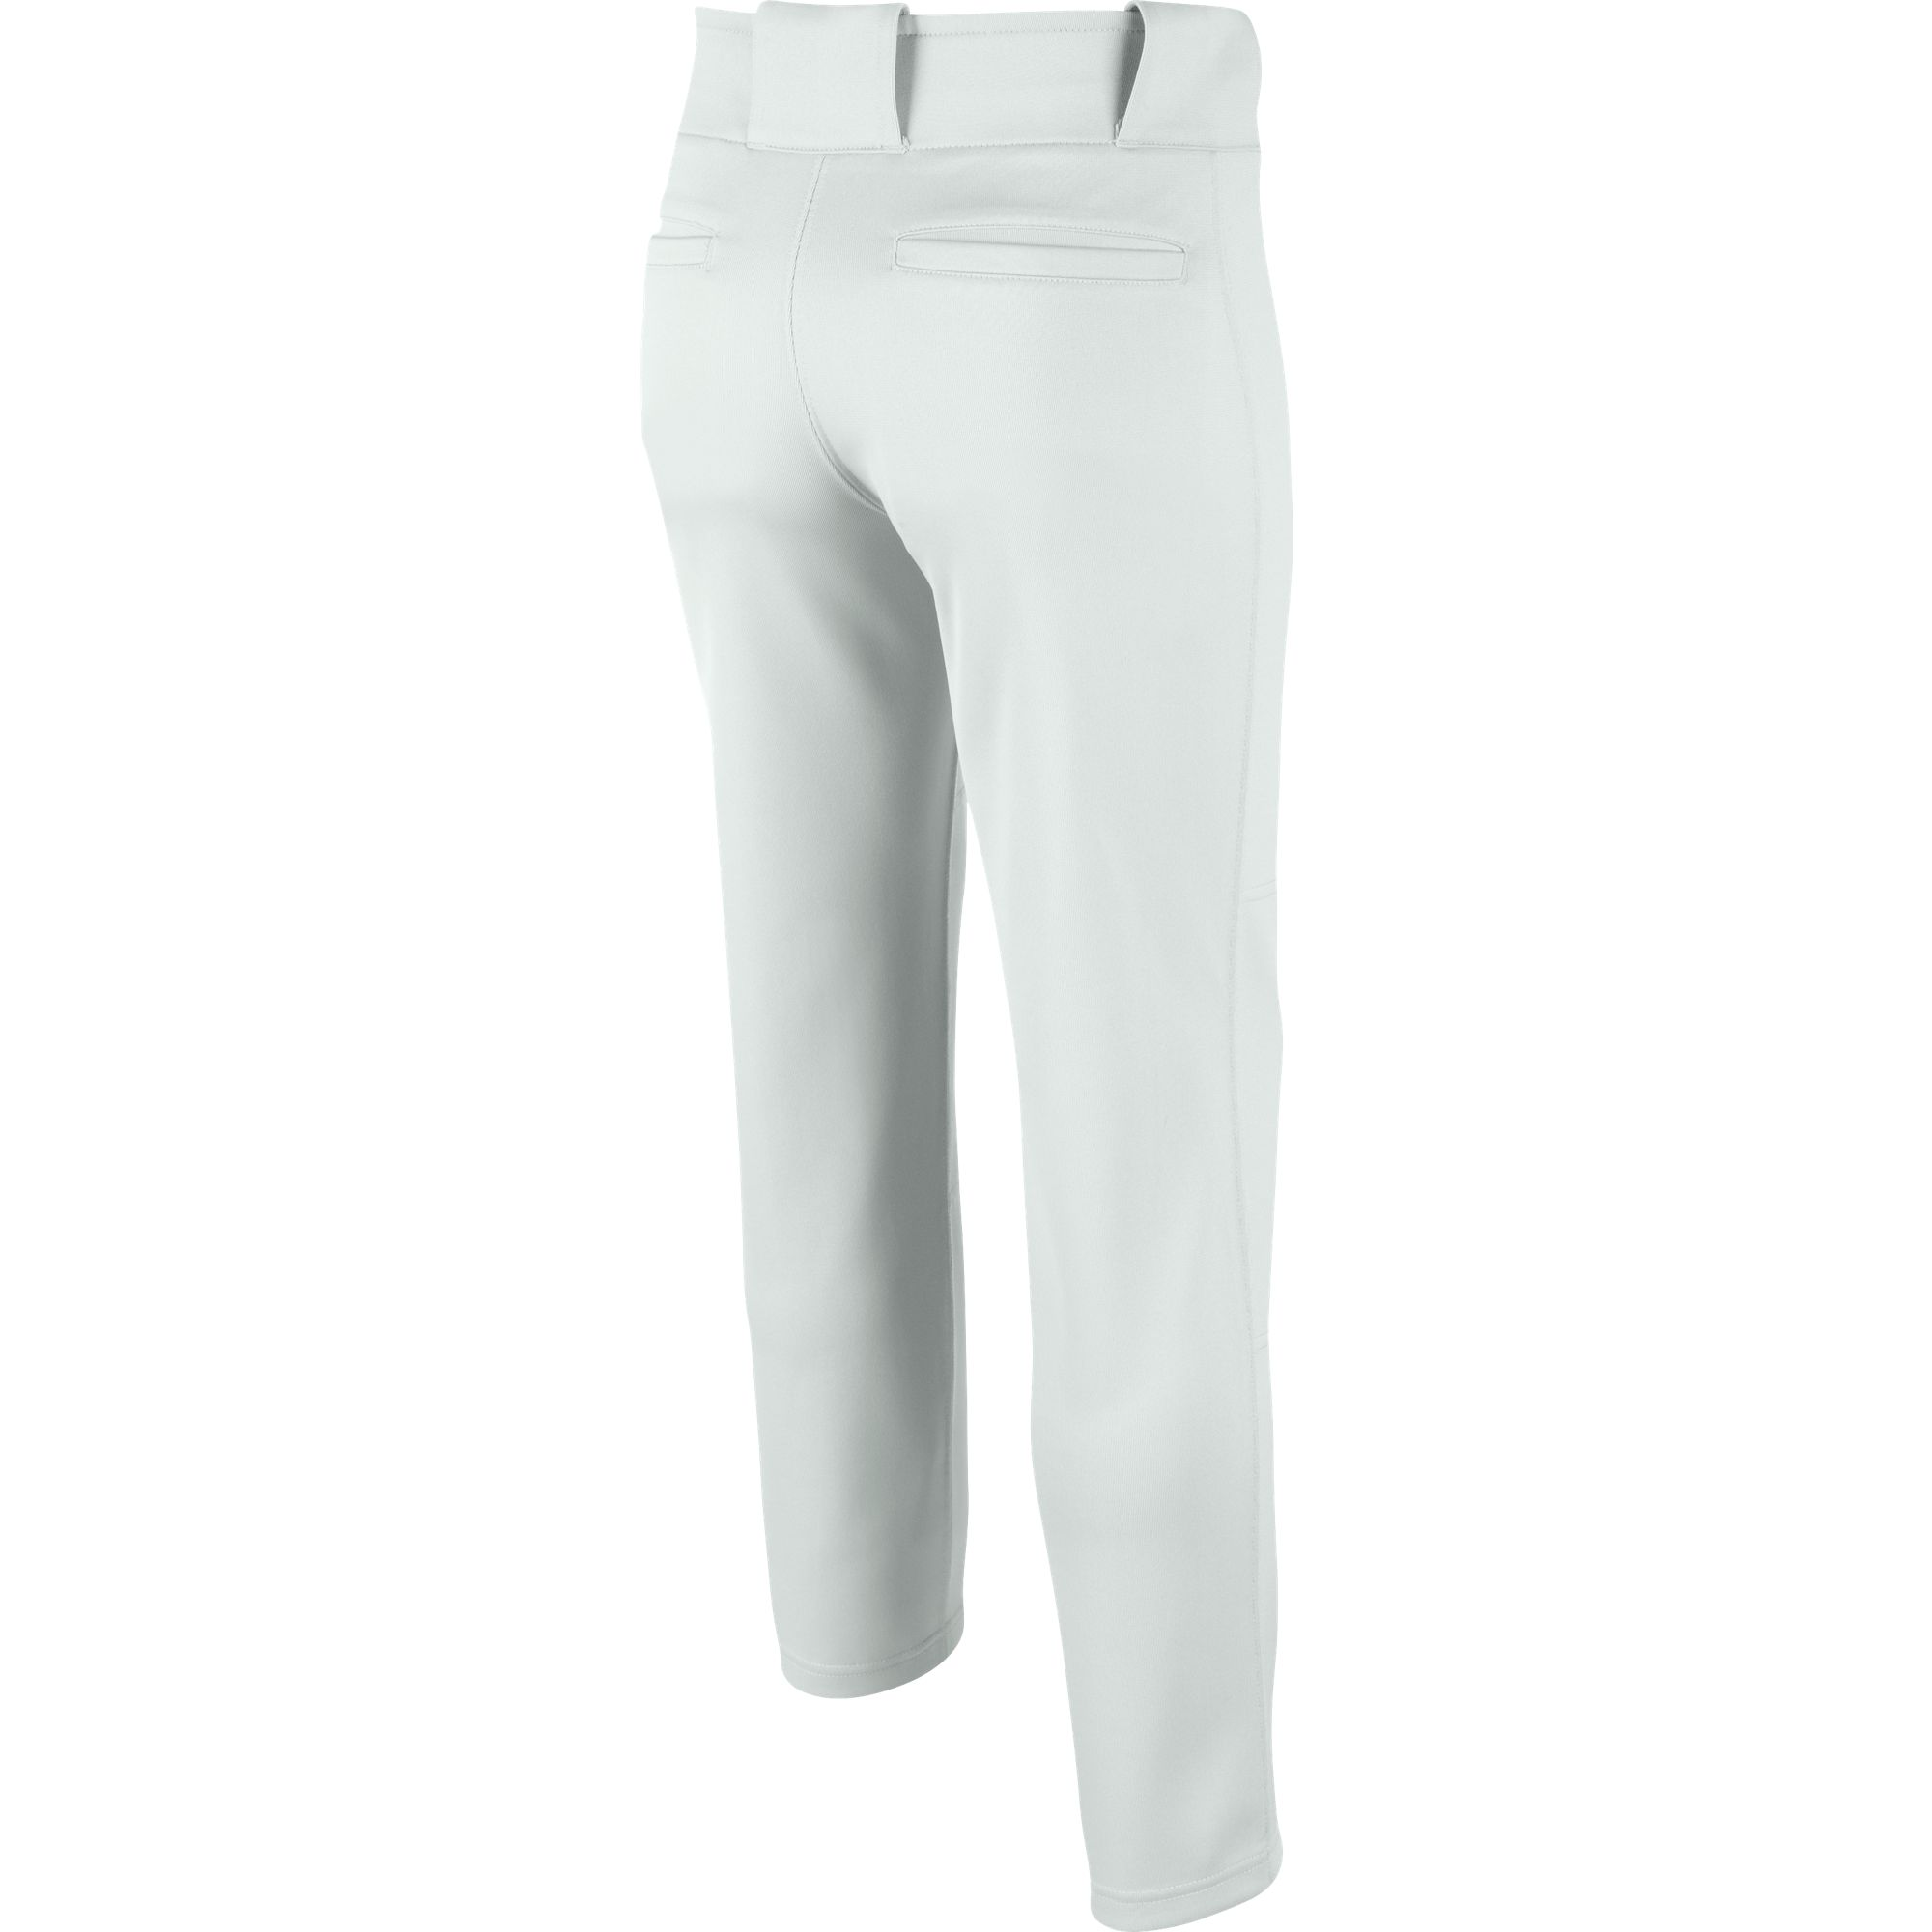 Youth Core Baseball Pant, White, swatch